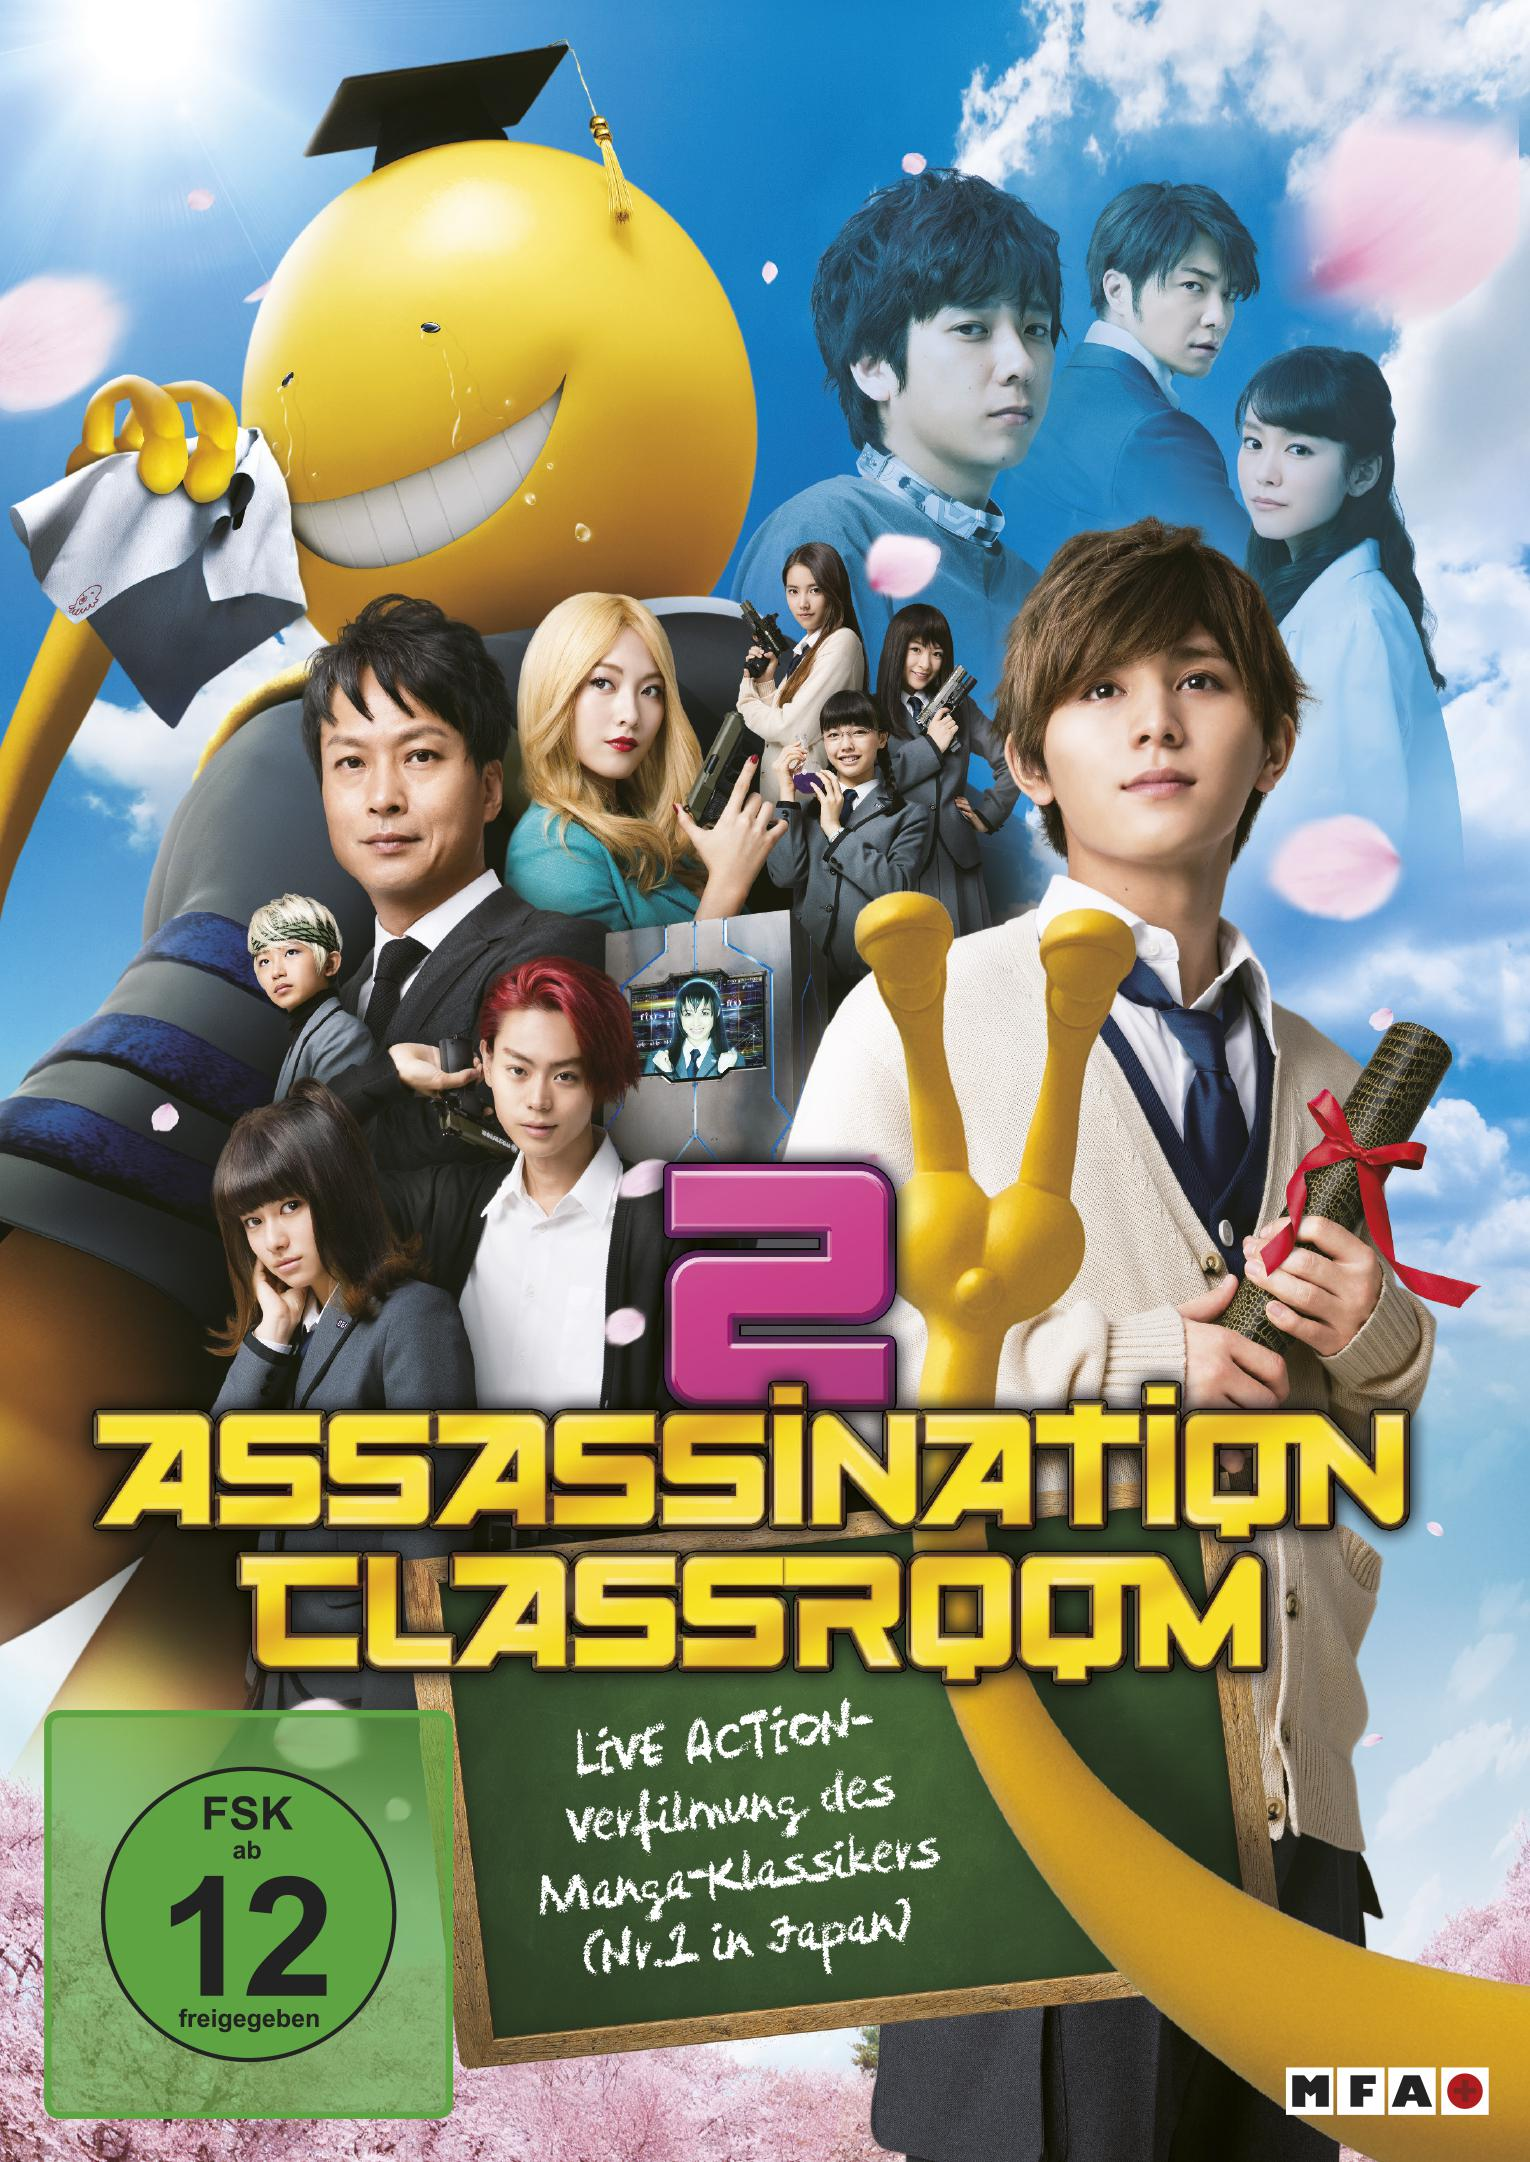 Assassination Classroom 2 - Graduation - live action - poster